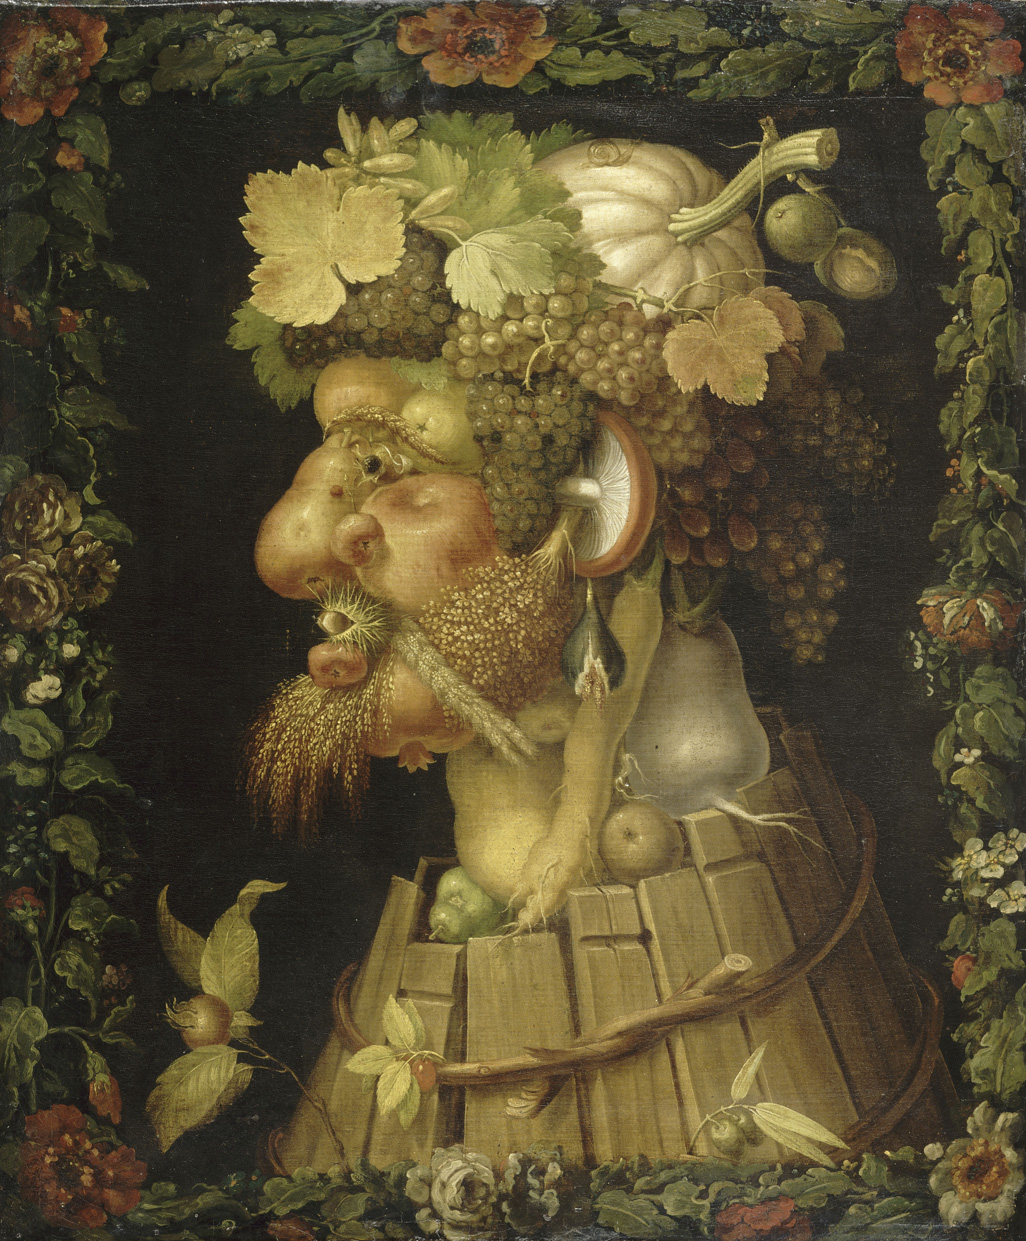 http://upload.wikimedia.org/wikipedia/commons/b/bf/Giuseppe_Arcimboldo_-_Autumn%2C_1573.jpg